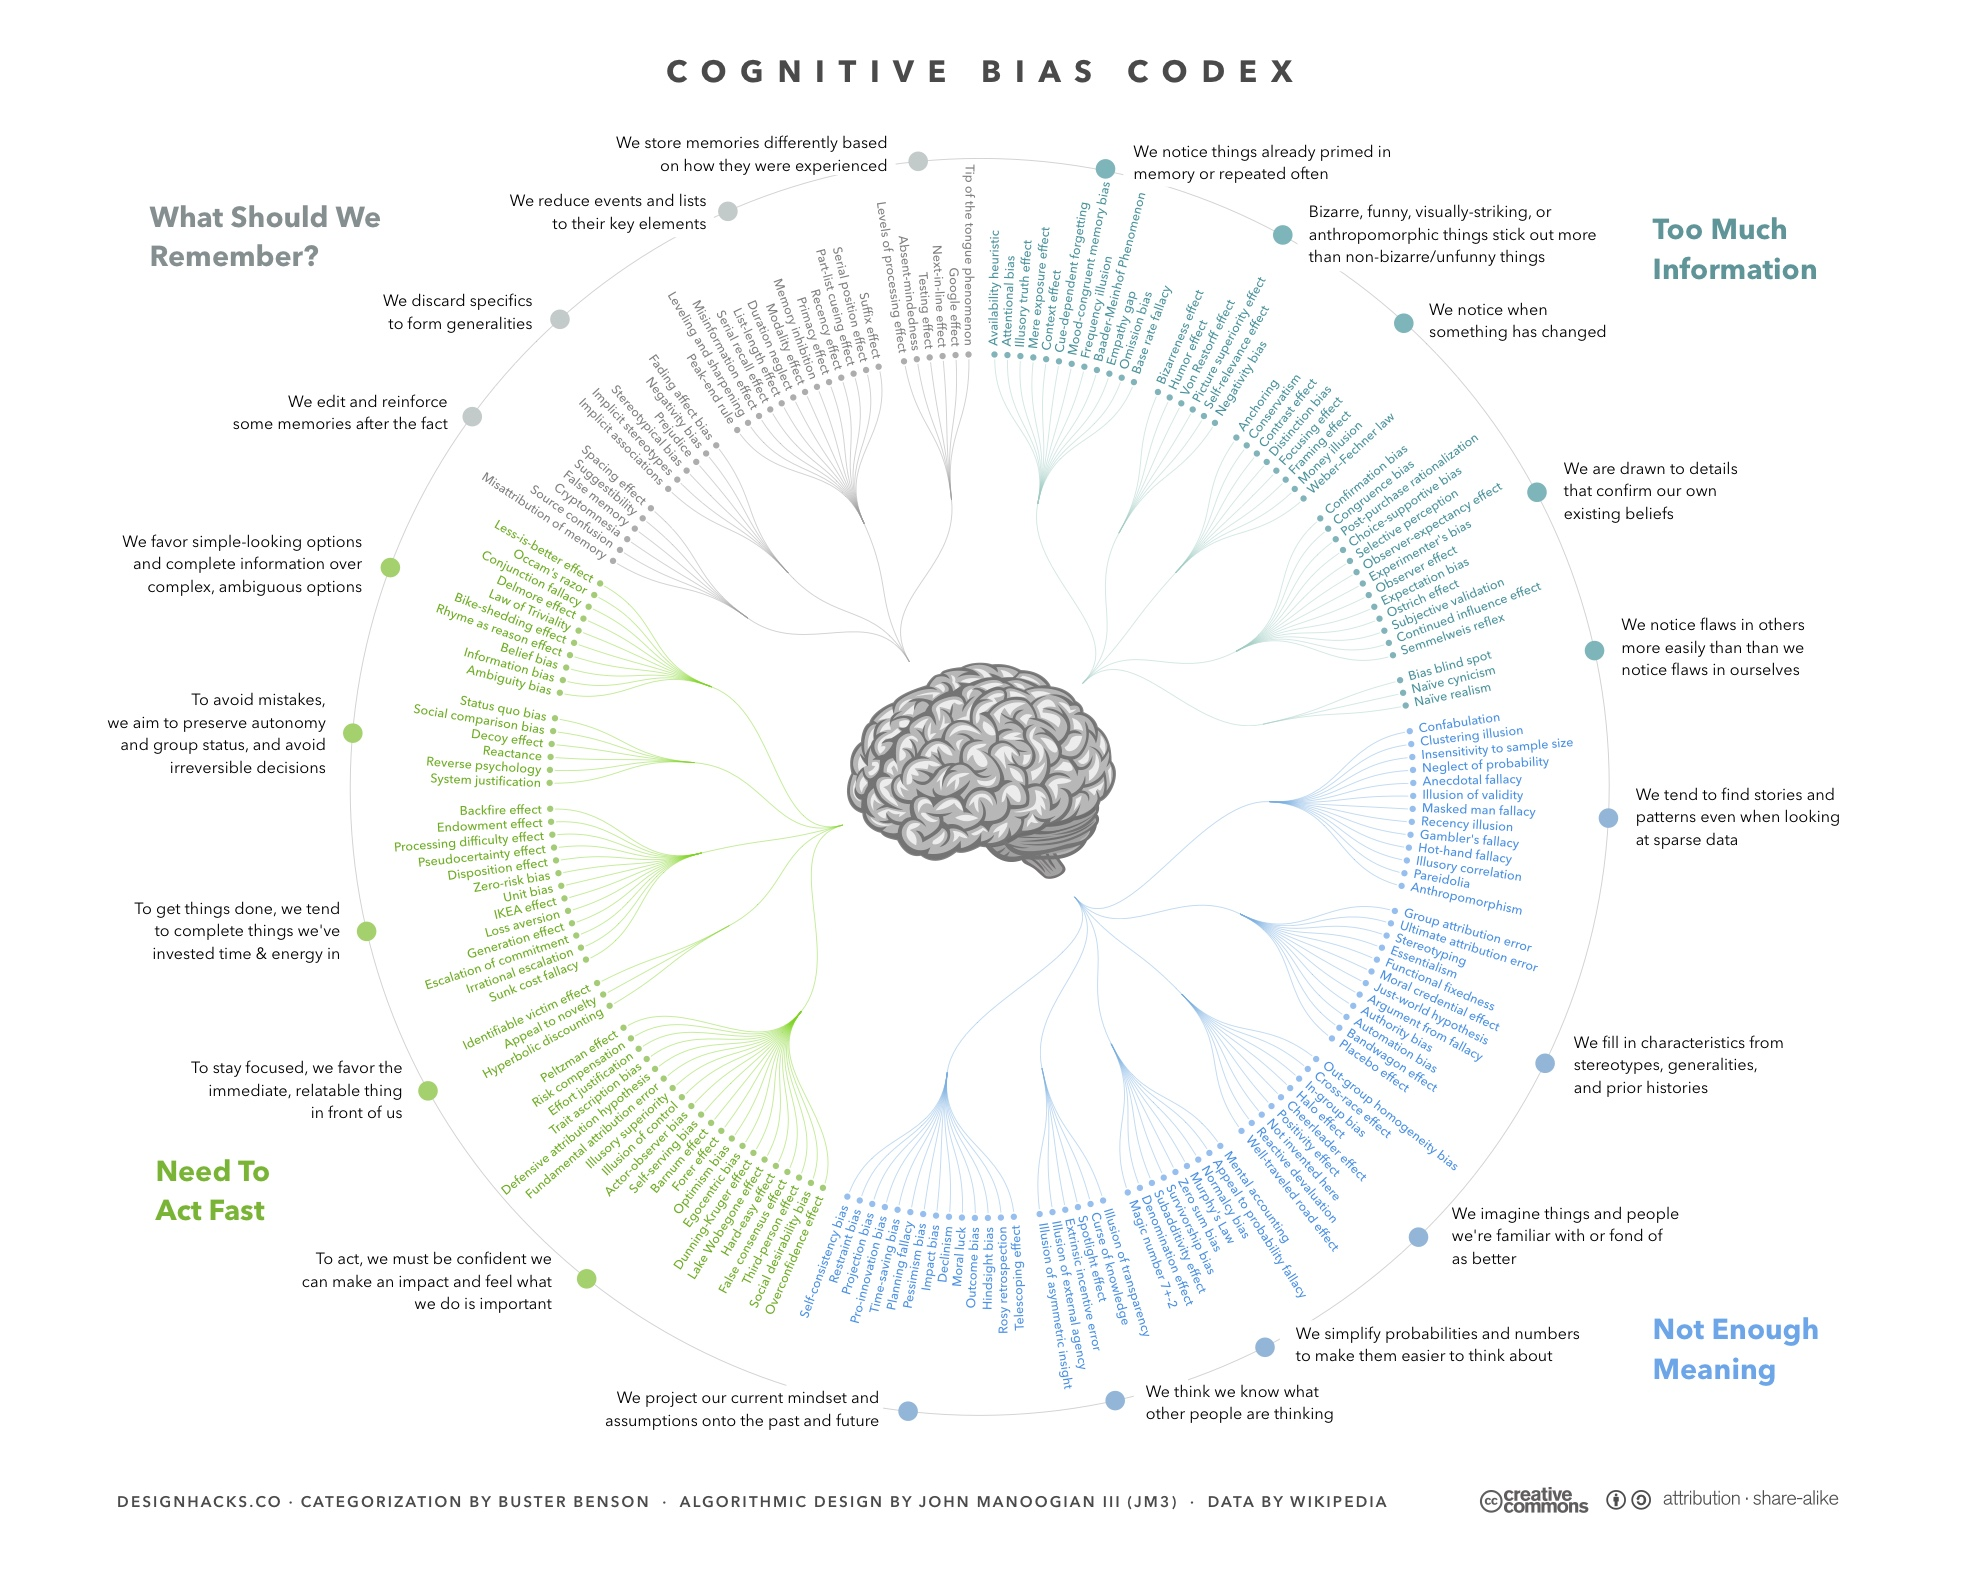 Cognitive Bias Codex - 180+ biases, designed by John Manoogian III